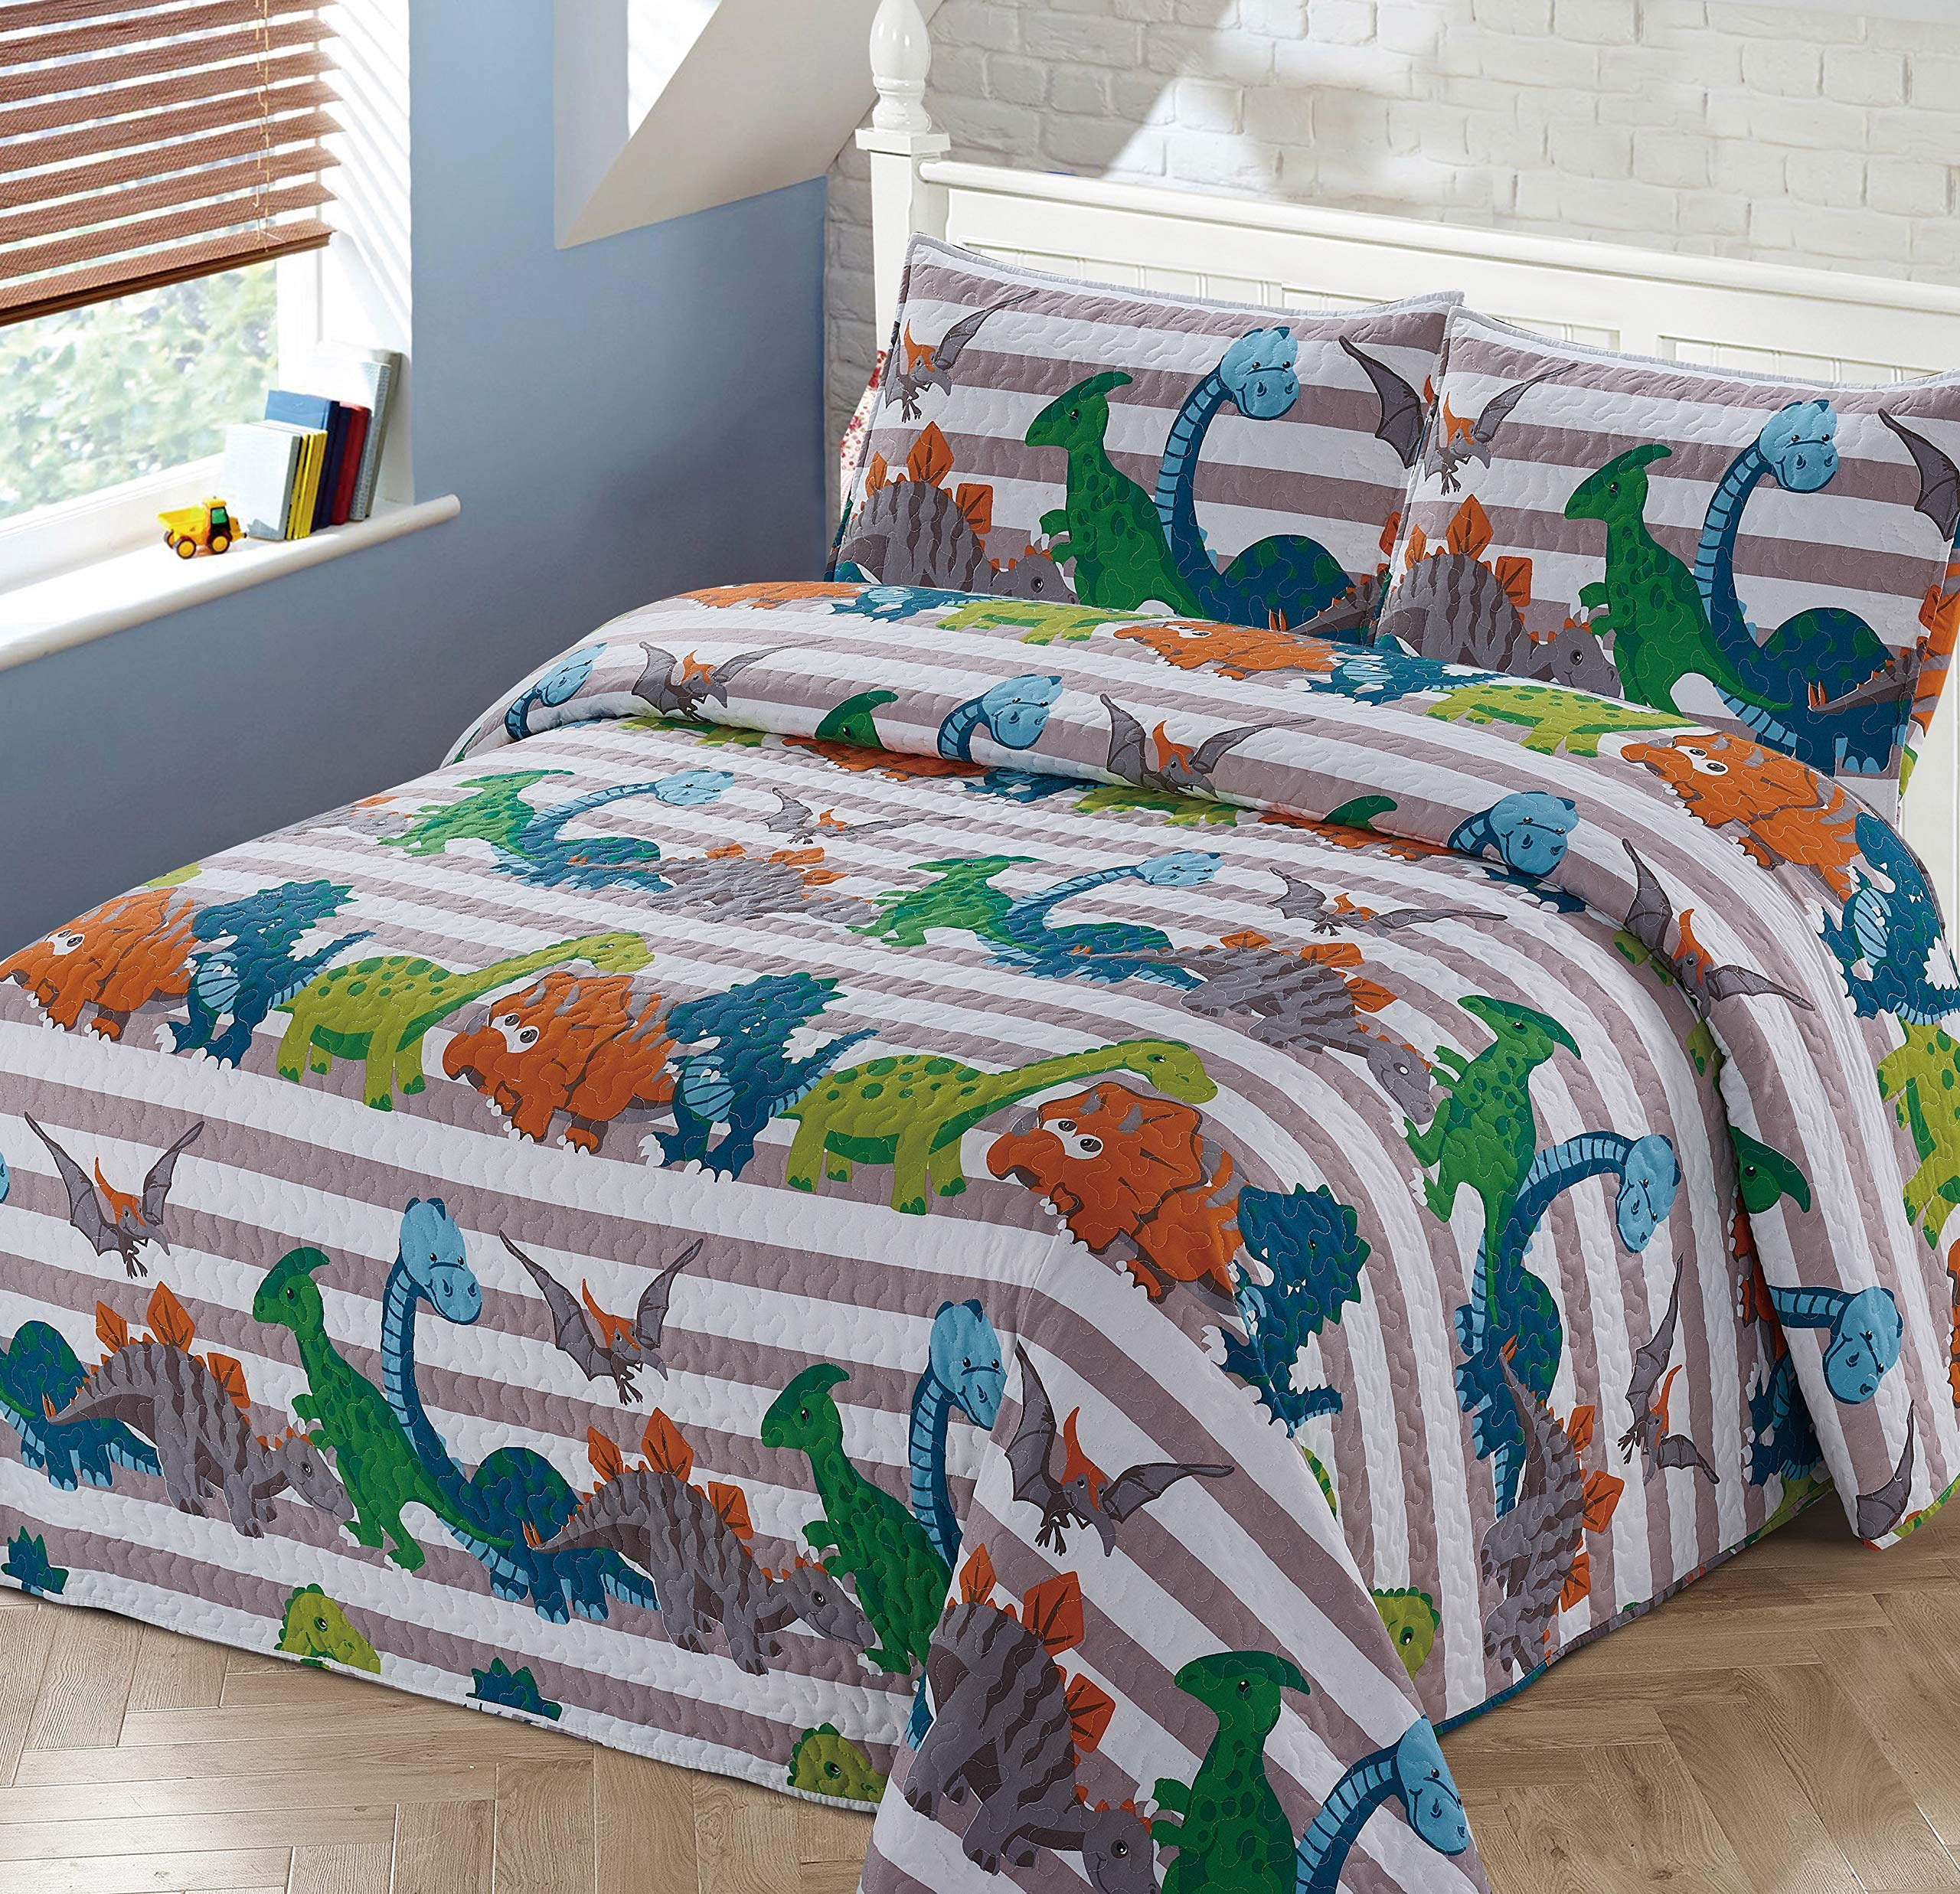 Better Home Style Dinosaur Dinosaurs Jurassic Park World Kids/Boys/Toddler Coverlet Bedspread Quilt Set with Pillowcases # 2018319 (Twin) by Better Home Style